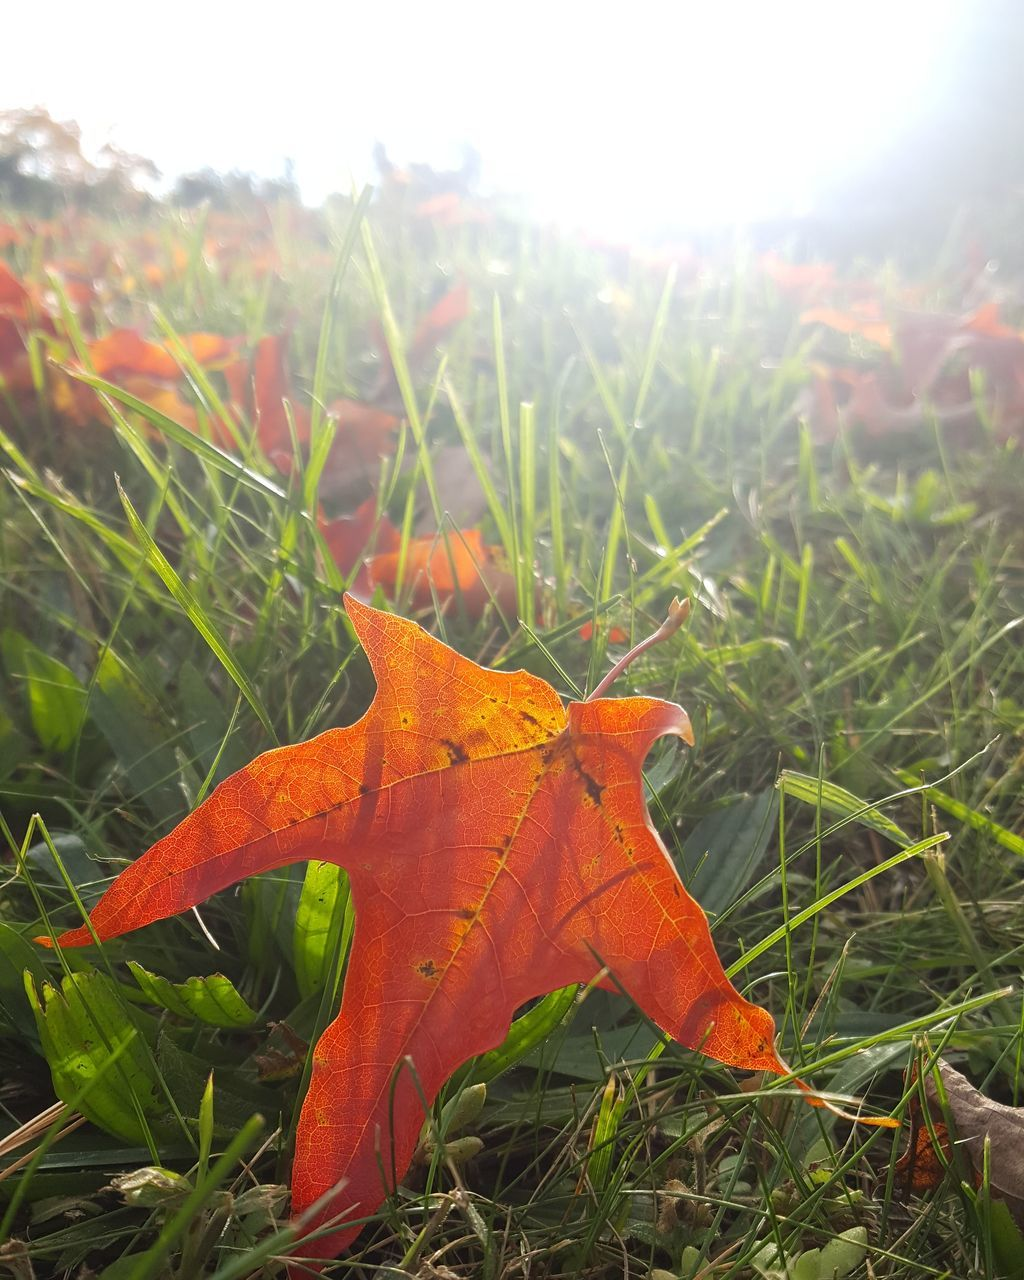 leaf, autumn, change, nature, grass, outdoors, growth, day, field, close-up, no people, plant, beauty in nature, maple leaf, green color, fragility, maple, sky